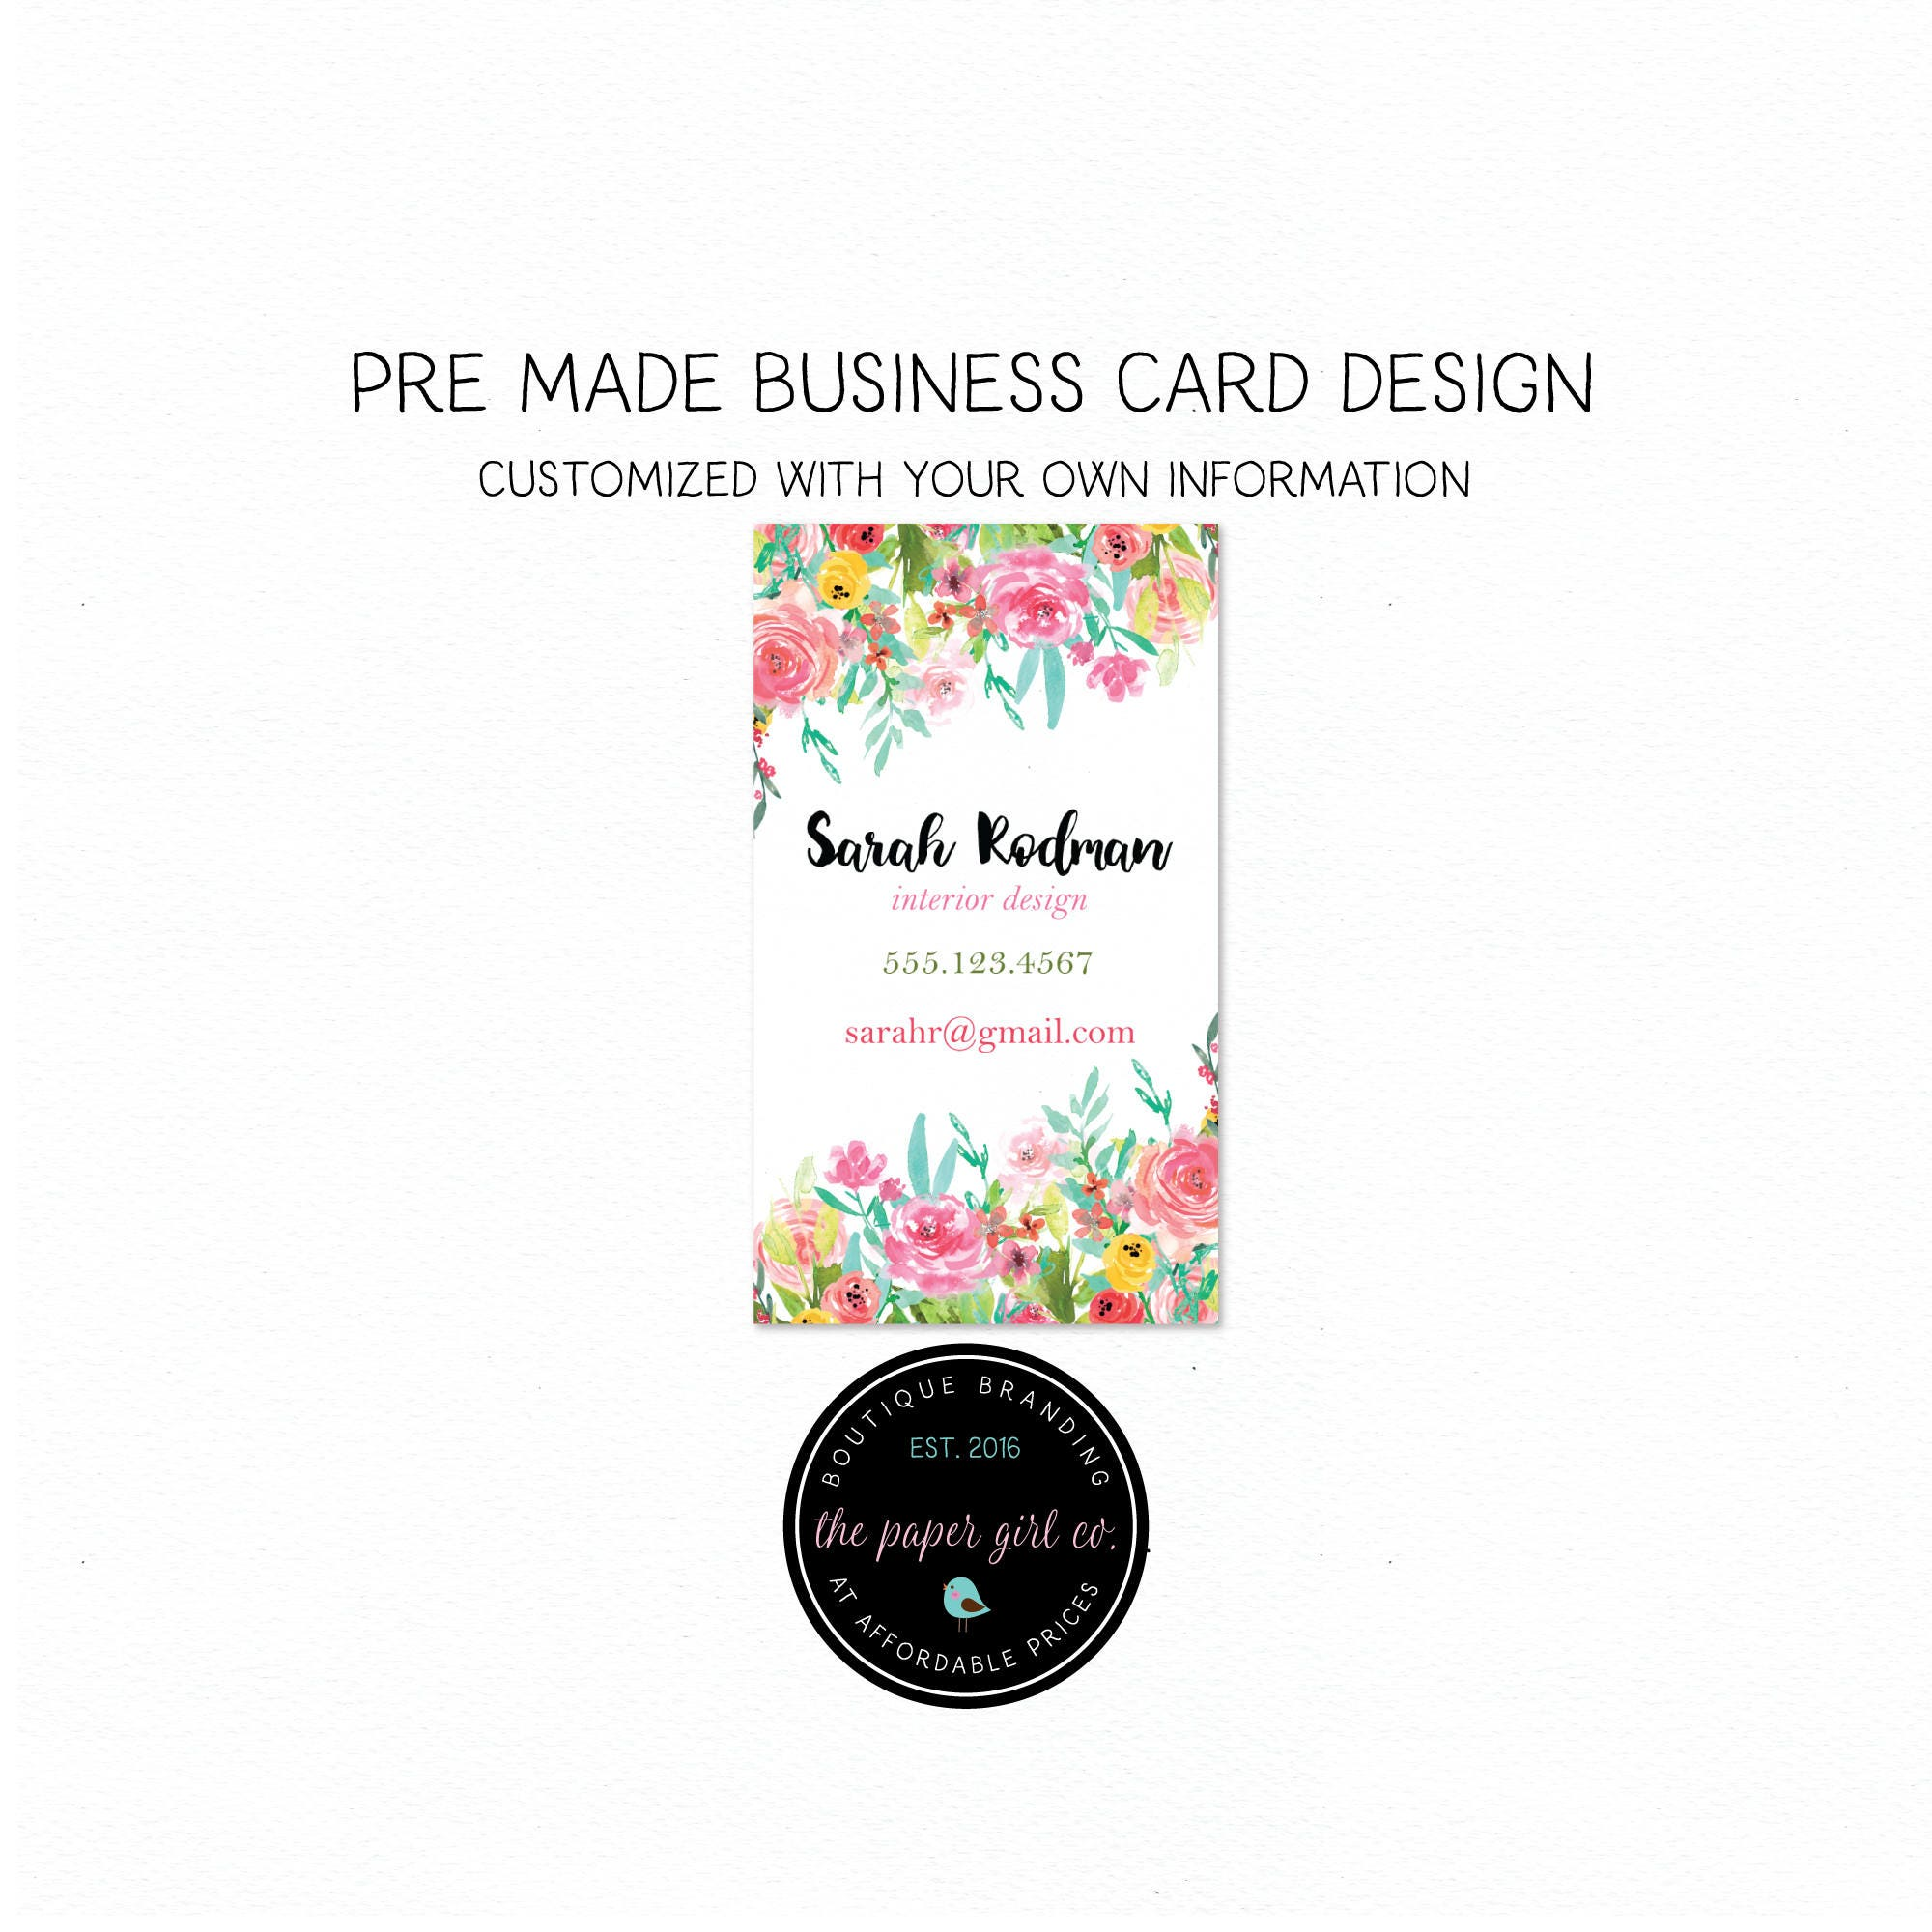 Business card design florist business card photography business card business card design florist business card photography business card beauty business card social card thank you reheart Image collections